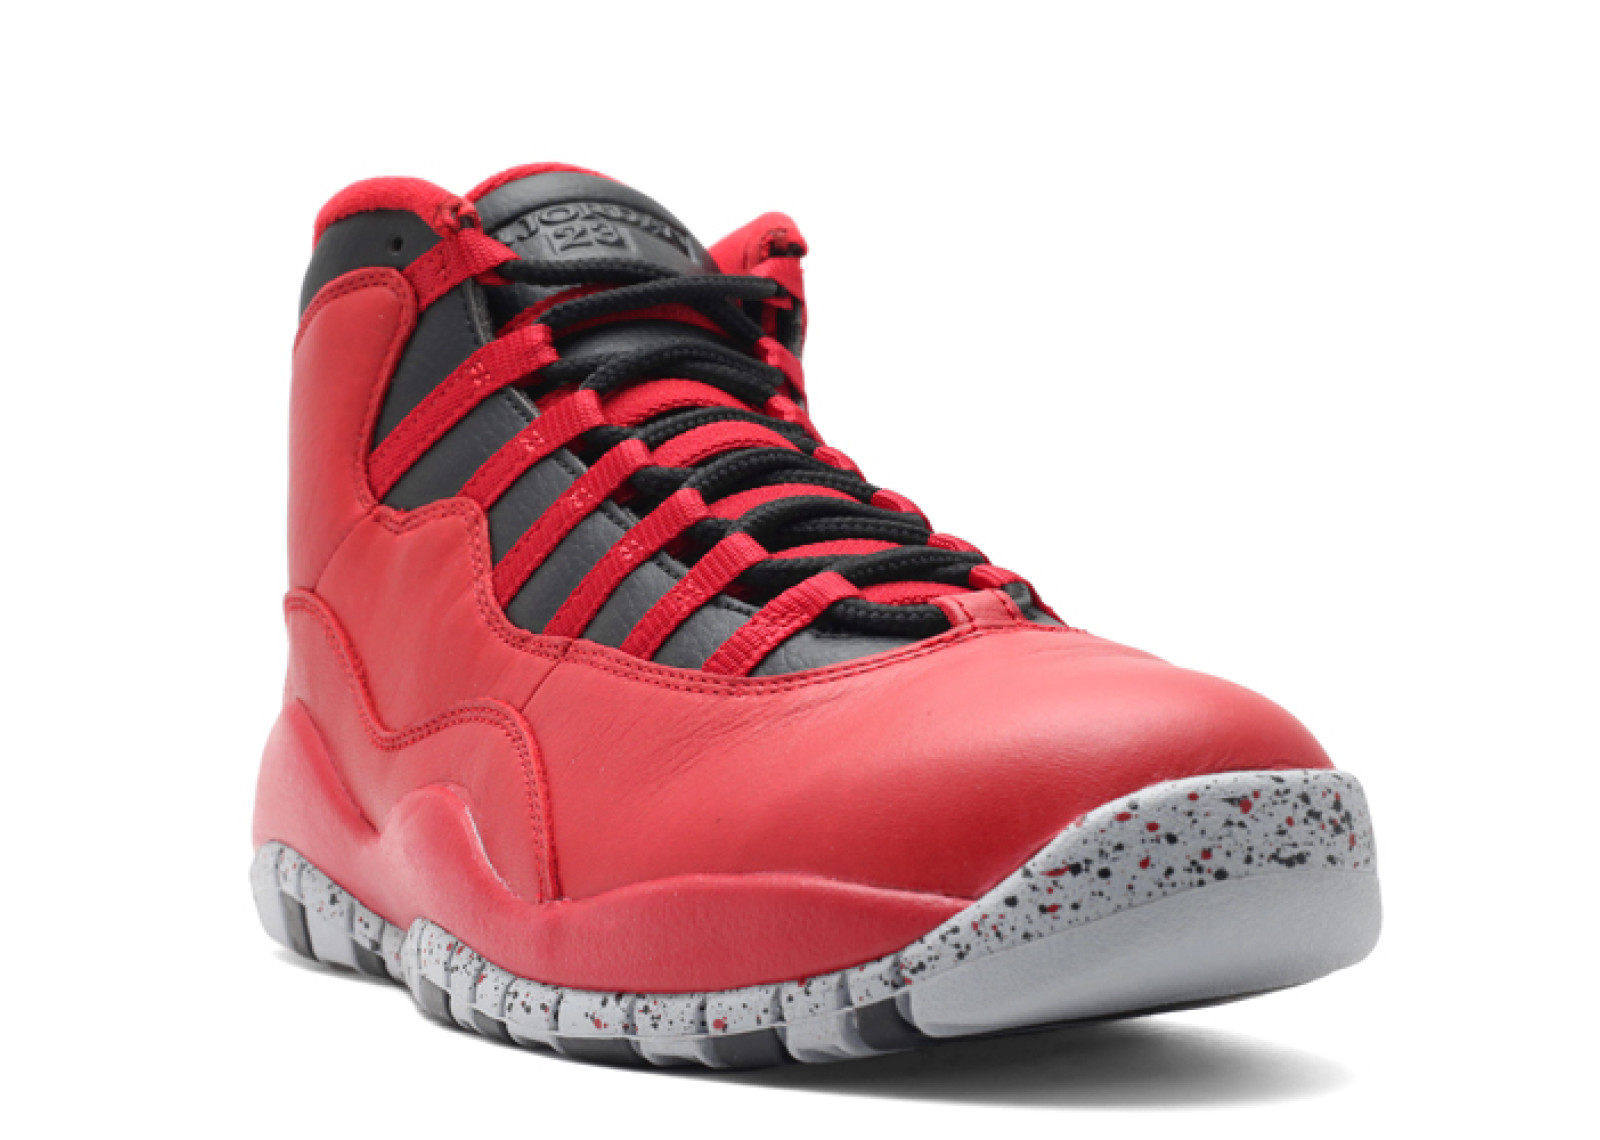 8d4004028d32e3 Air Jordan - Men - Air Jordan 10 Retro 30Th  Bulls Over Broadway  -  705178-601 - Size 8.5